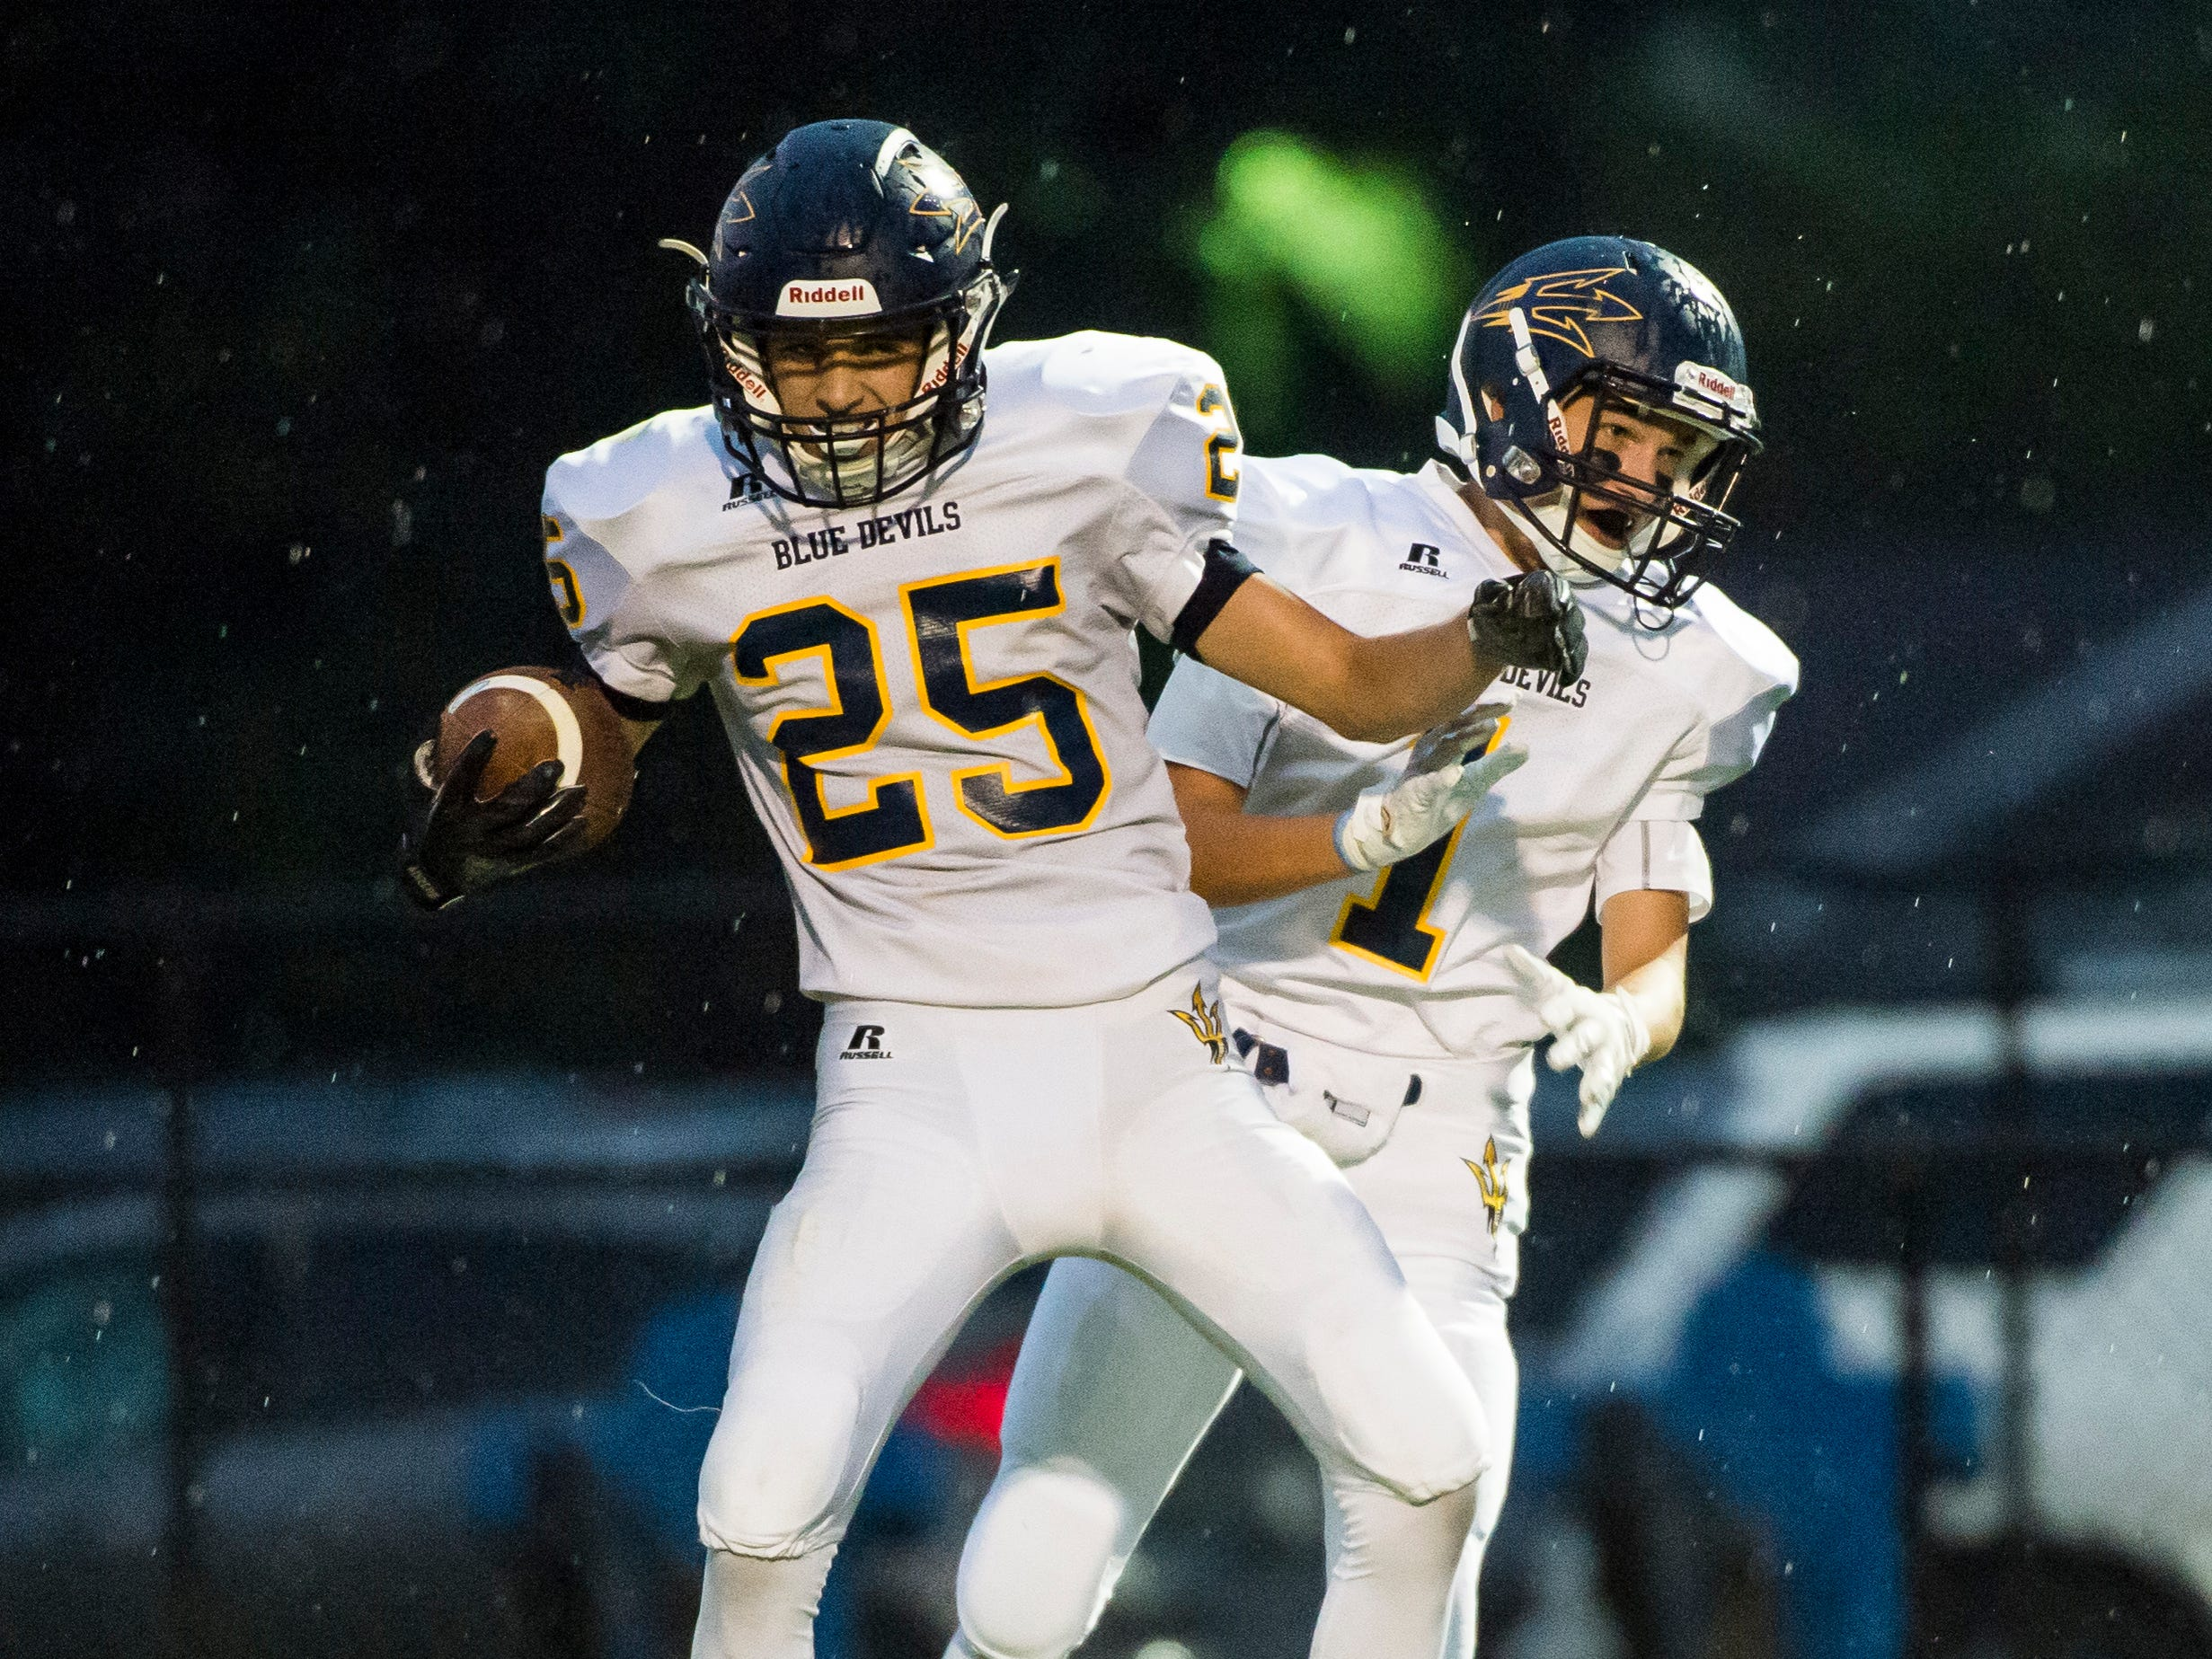 Greencastle-Antrim's Ethan Murr (25) celebrates with Malachi Rhodes after scoring a touchdown against Hanover on Friday, September 7, 2018.